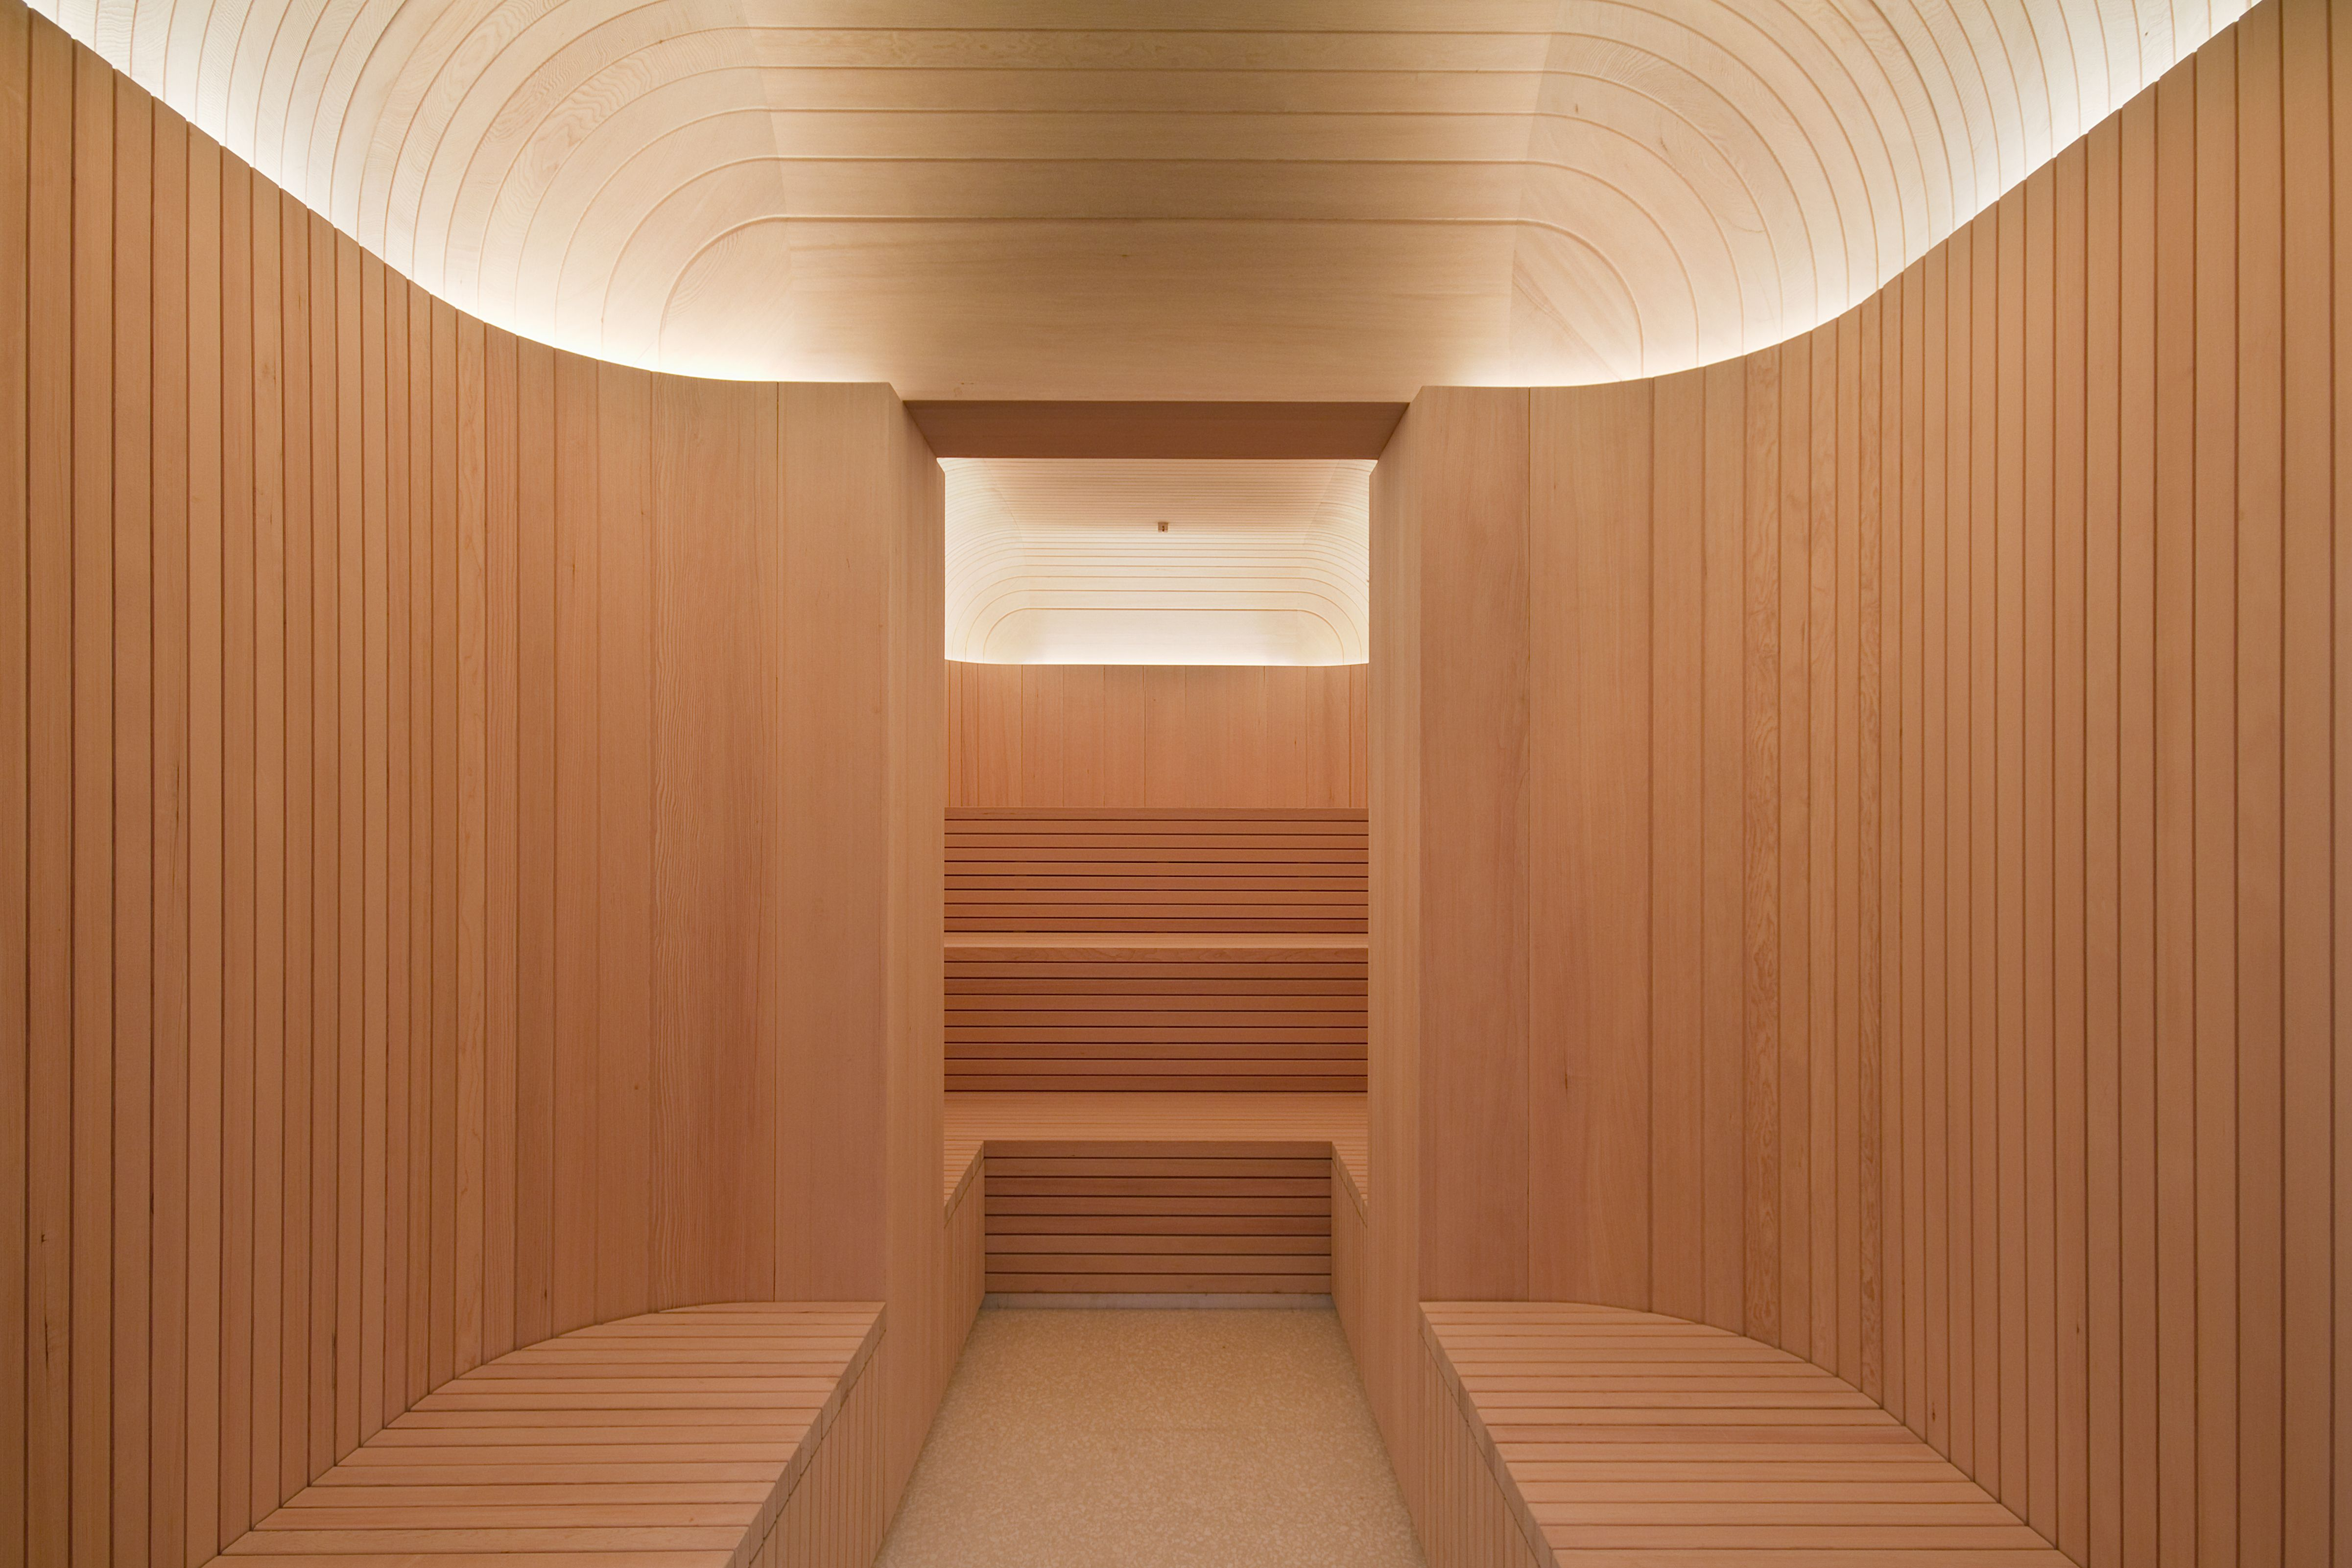 Custom Made Sauna For Caf Royal London Designed By David Chipperfield Architects